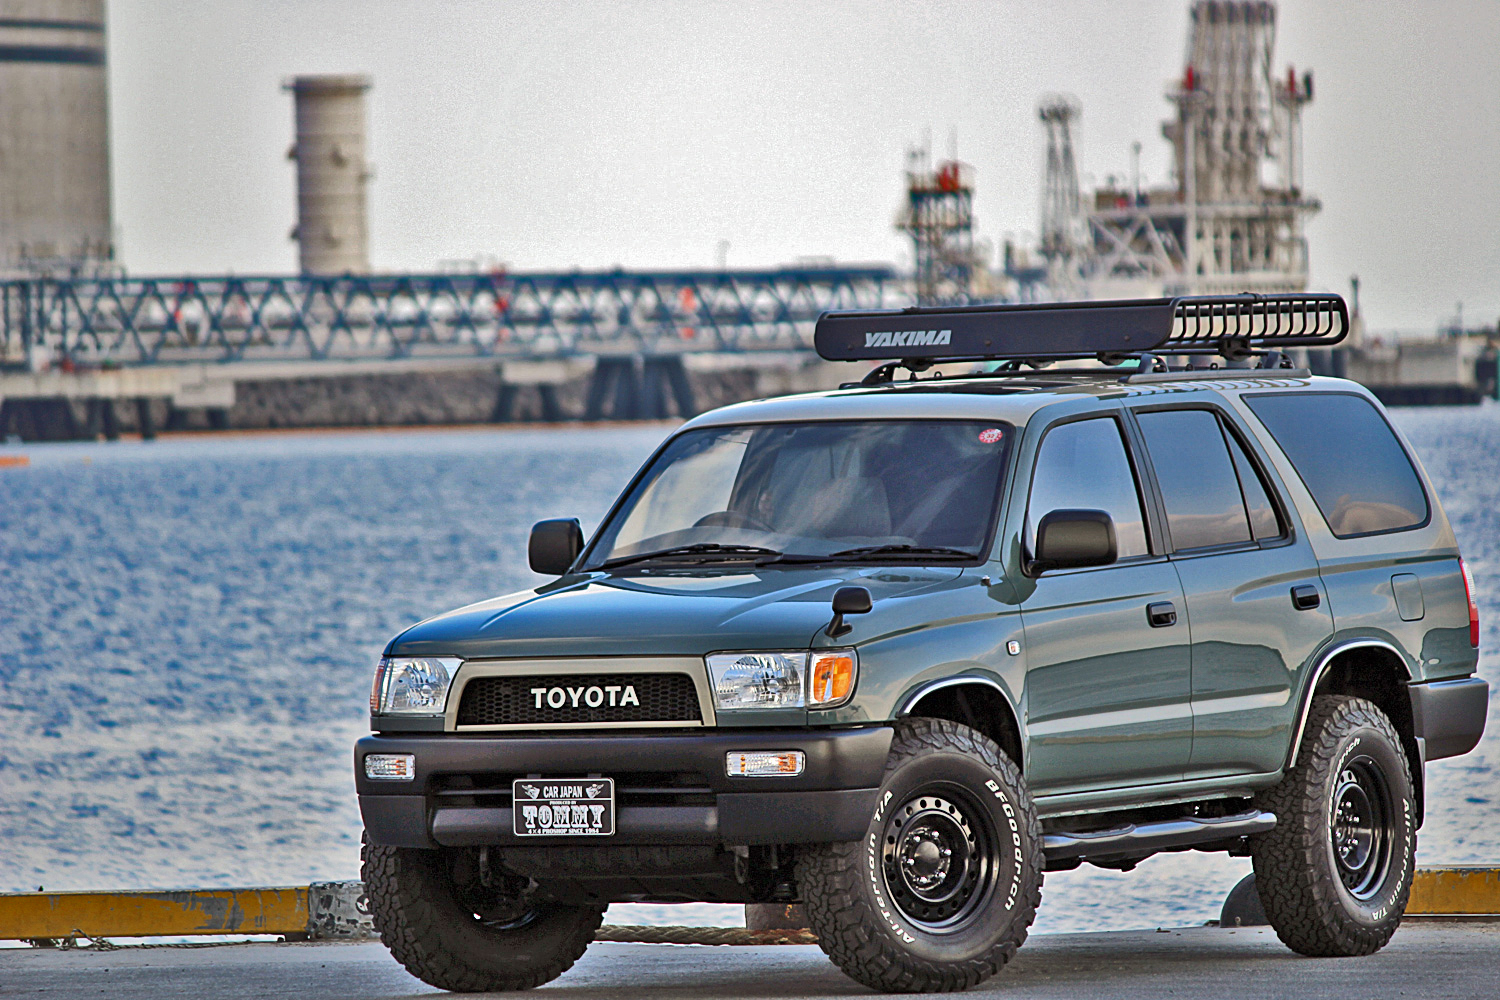 Hiluxsurf-4RUNNER-NARROWオプションパーツ05